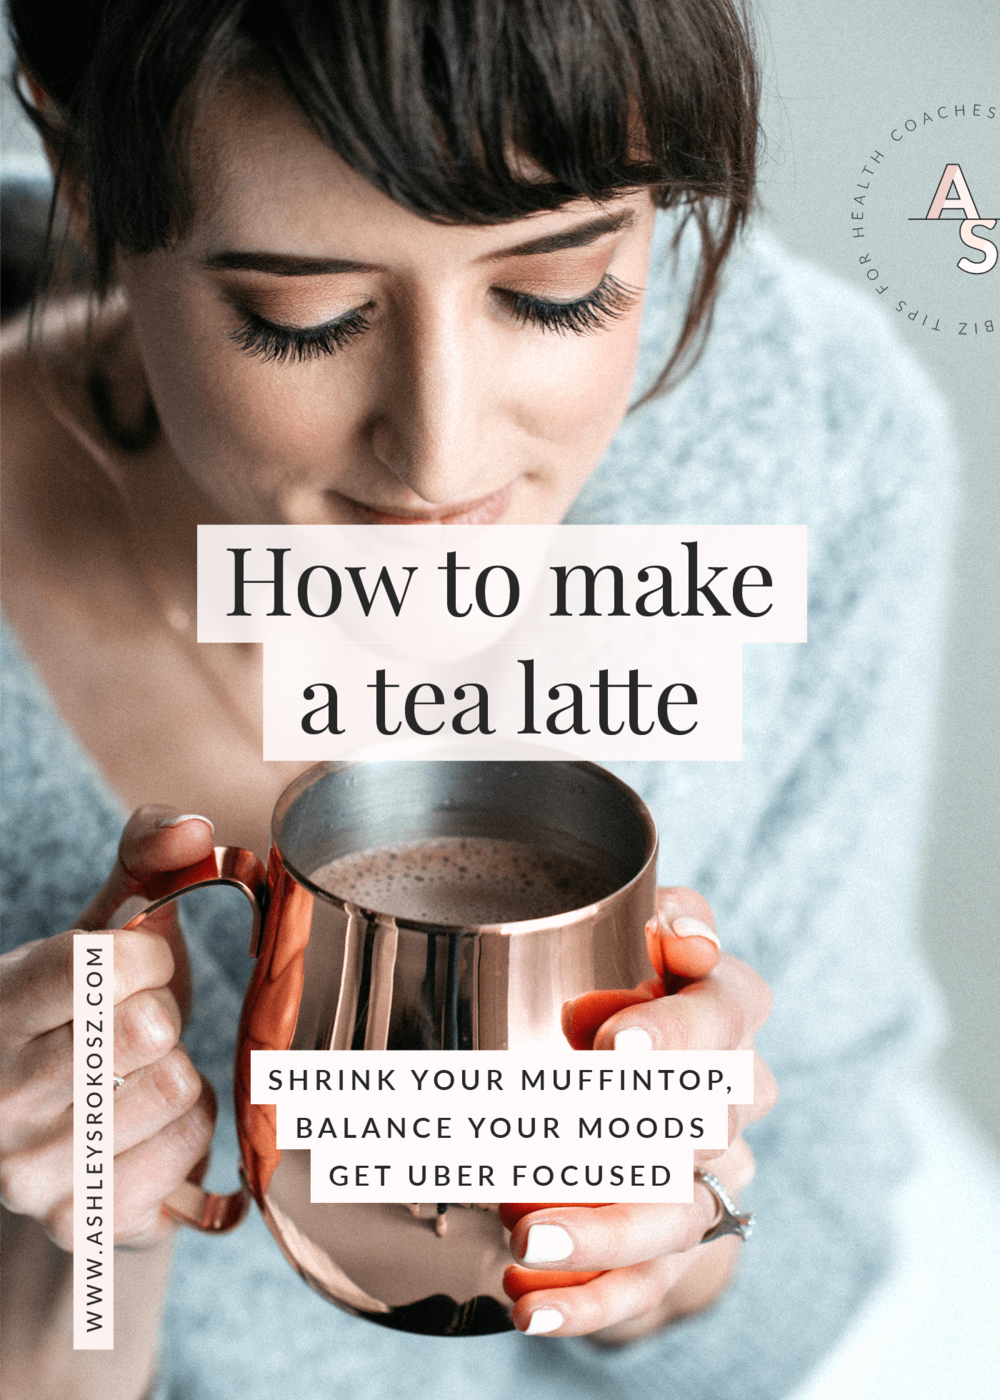 Tired of feeling tired all day? Want a quick breakfast that'll shrink your muffin top? Then why not try butter tea! Click here to learn how to make a tea latte that'll balance your hormones and moods, and help you stay focused. Busy mom approved! #tealatte #tealatterecipe #tealattehowtomakea #tealattealmondmilk